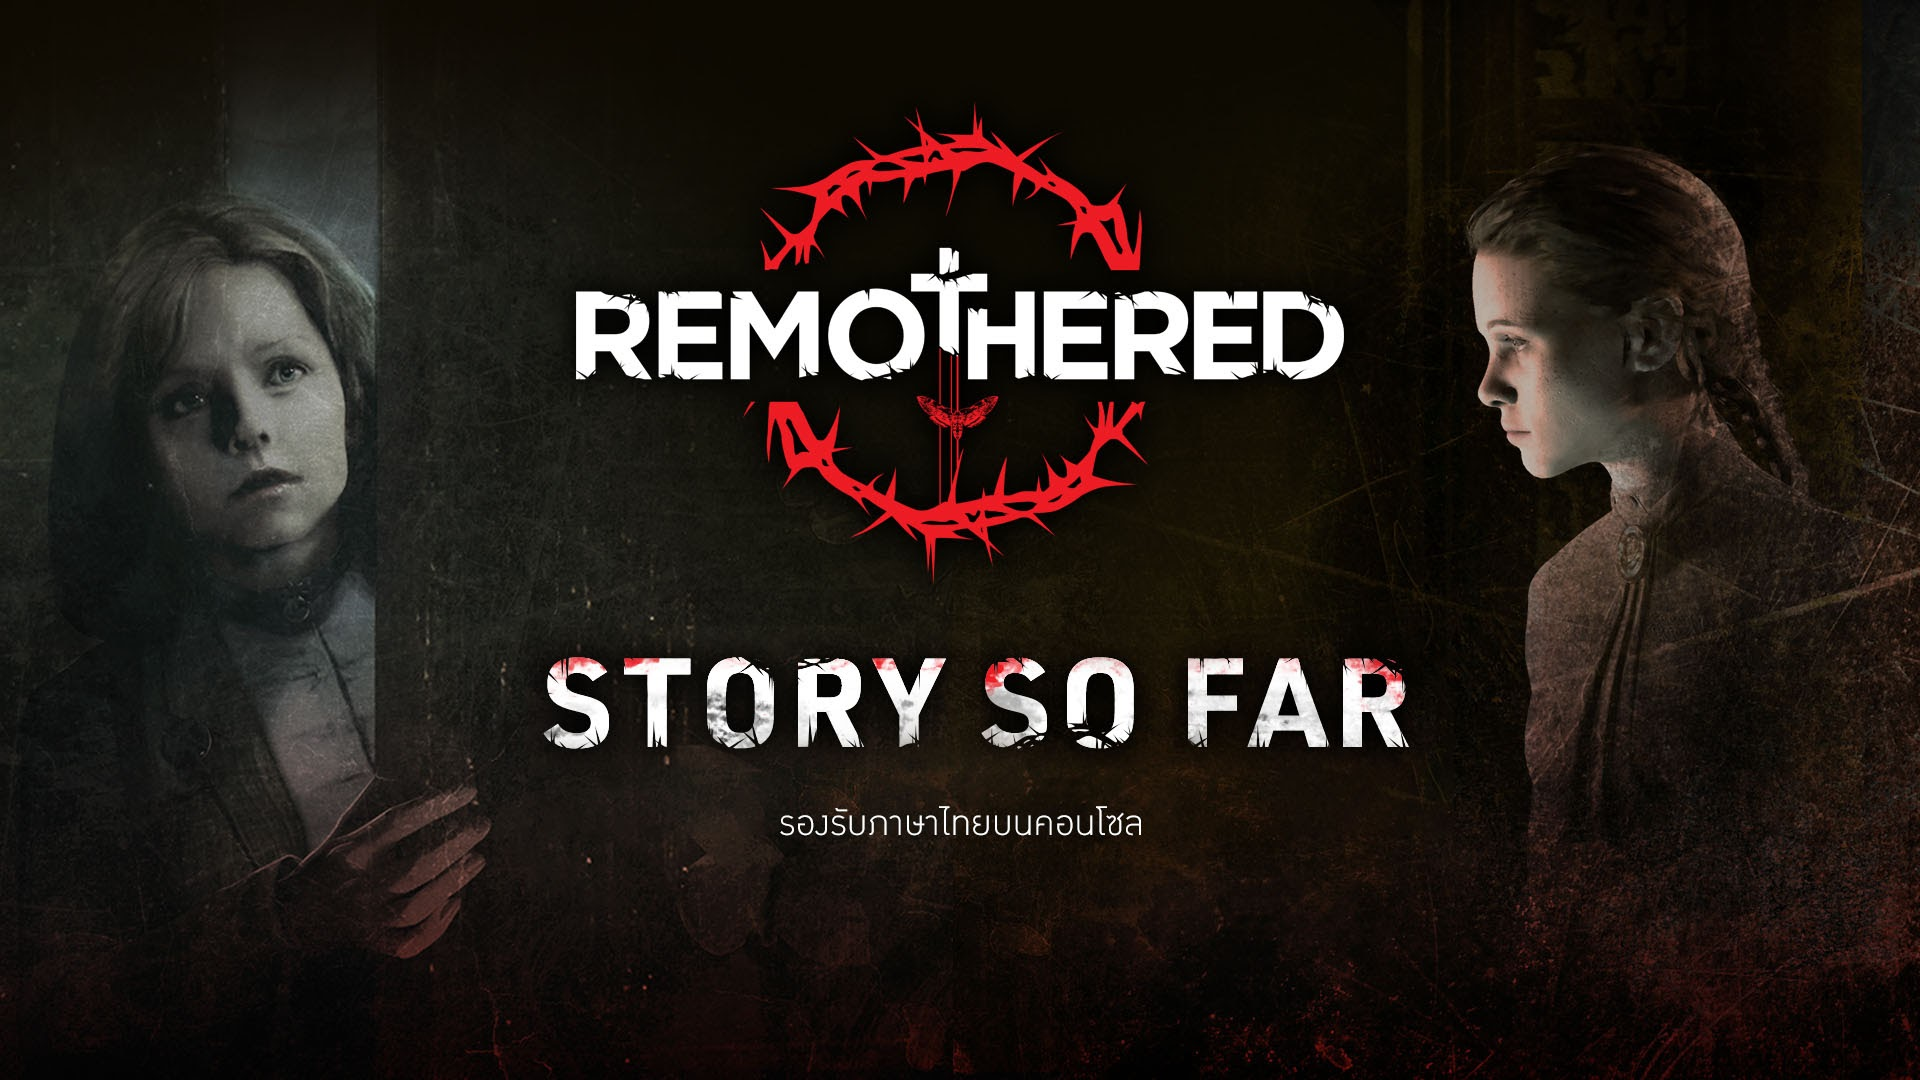 Remothered 6102020 1